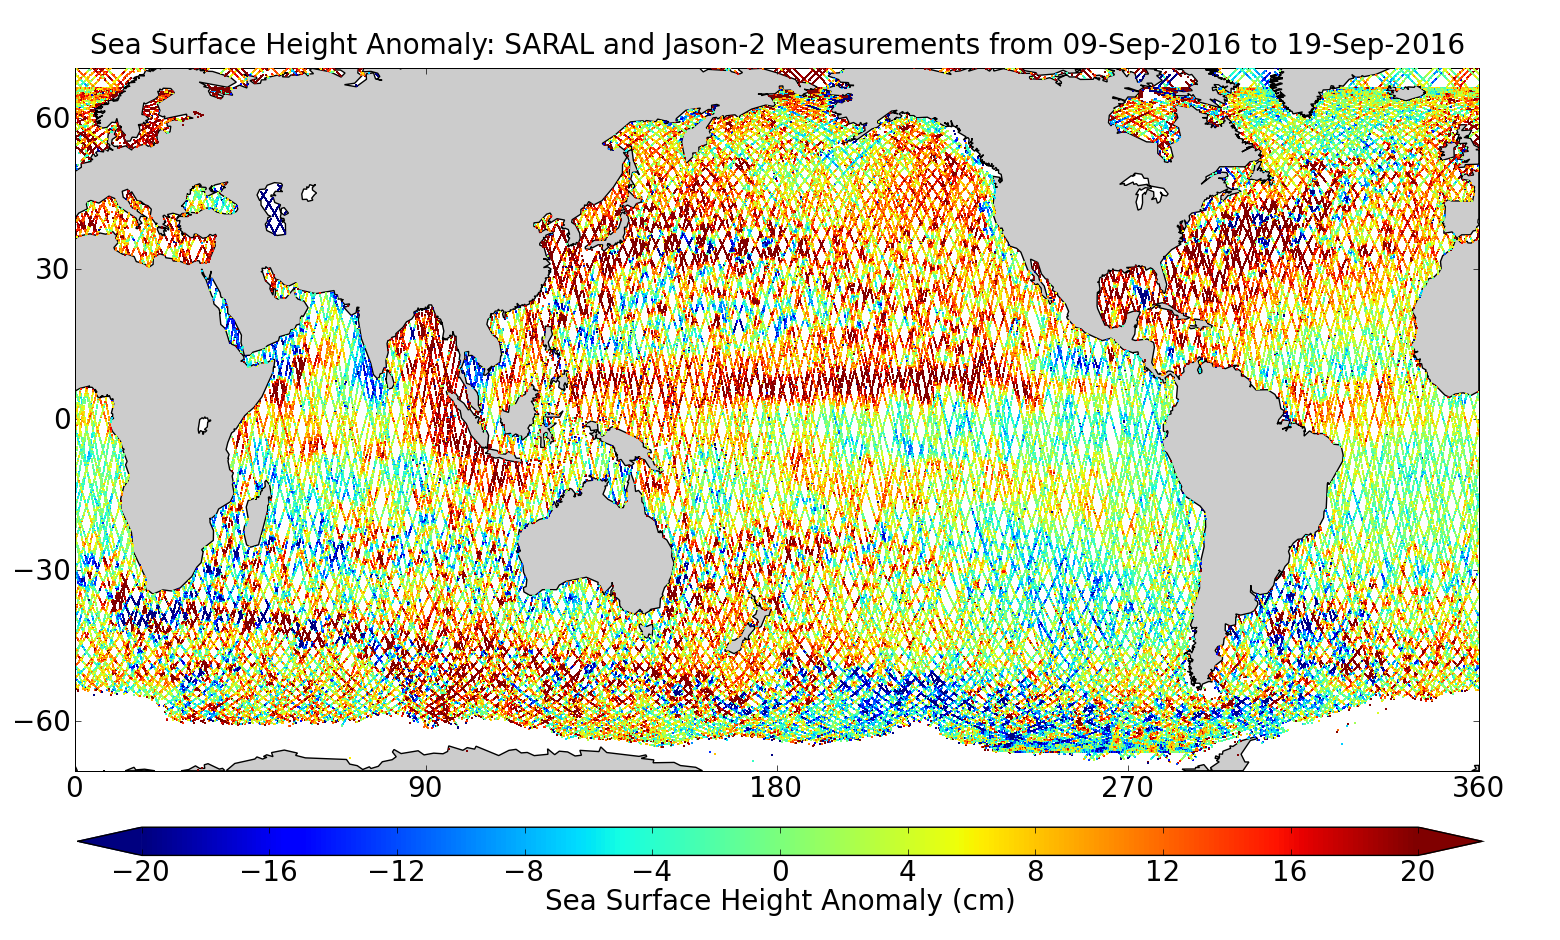 Sea Surface Height Anomaly: SARAL and Jason-2 Measurements from 09-Sep-2016 to 19-Sep-2016